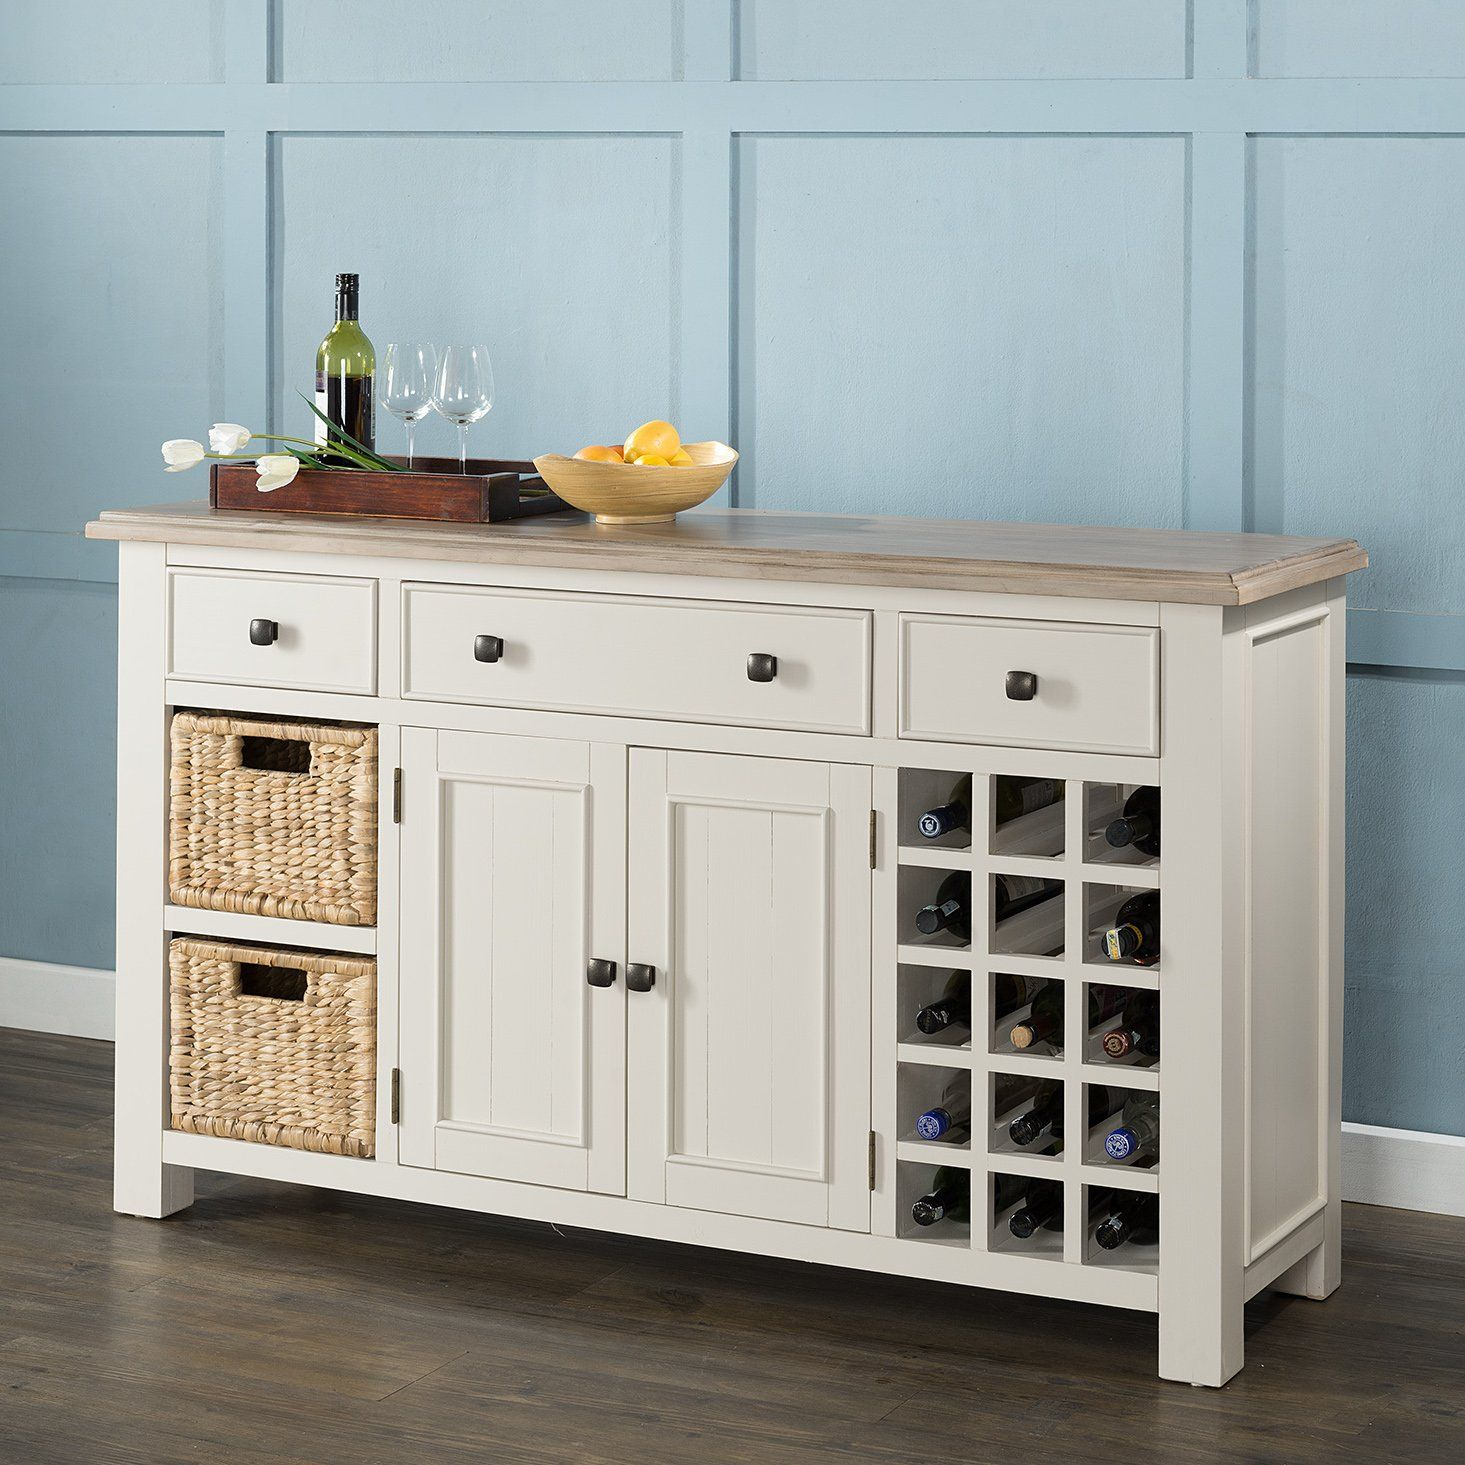 Buffet Sideboard With Wine Rack Hampton Large Sideboard Wine Rack Baskets Diy In 2019 Large